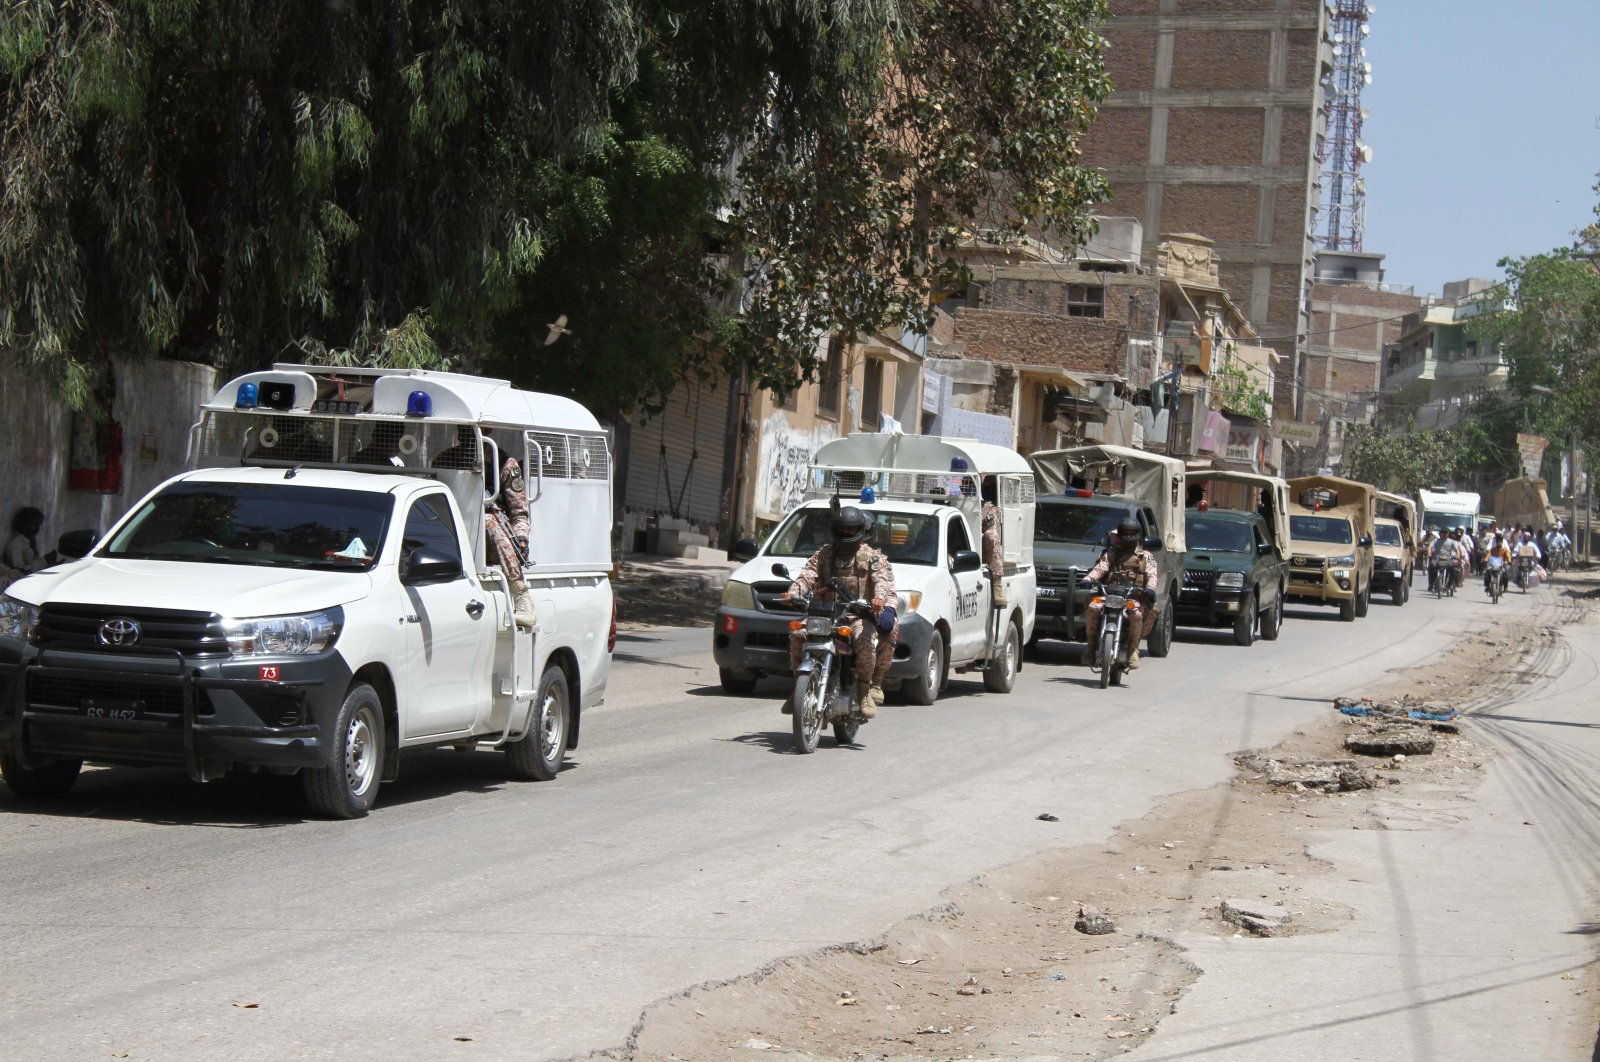 Convoy of Pakistani police and rangers passes during a full lockdown of the Sindh province, in Hyderabad, Pakistan, April 2, 2020. (EPA Photo)